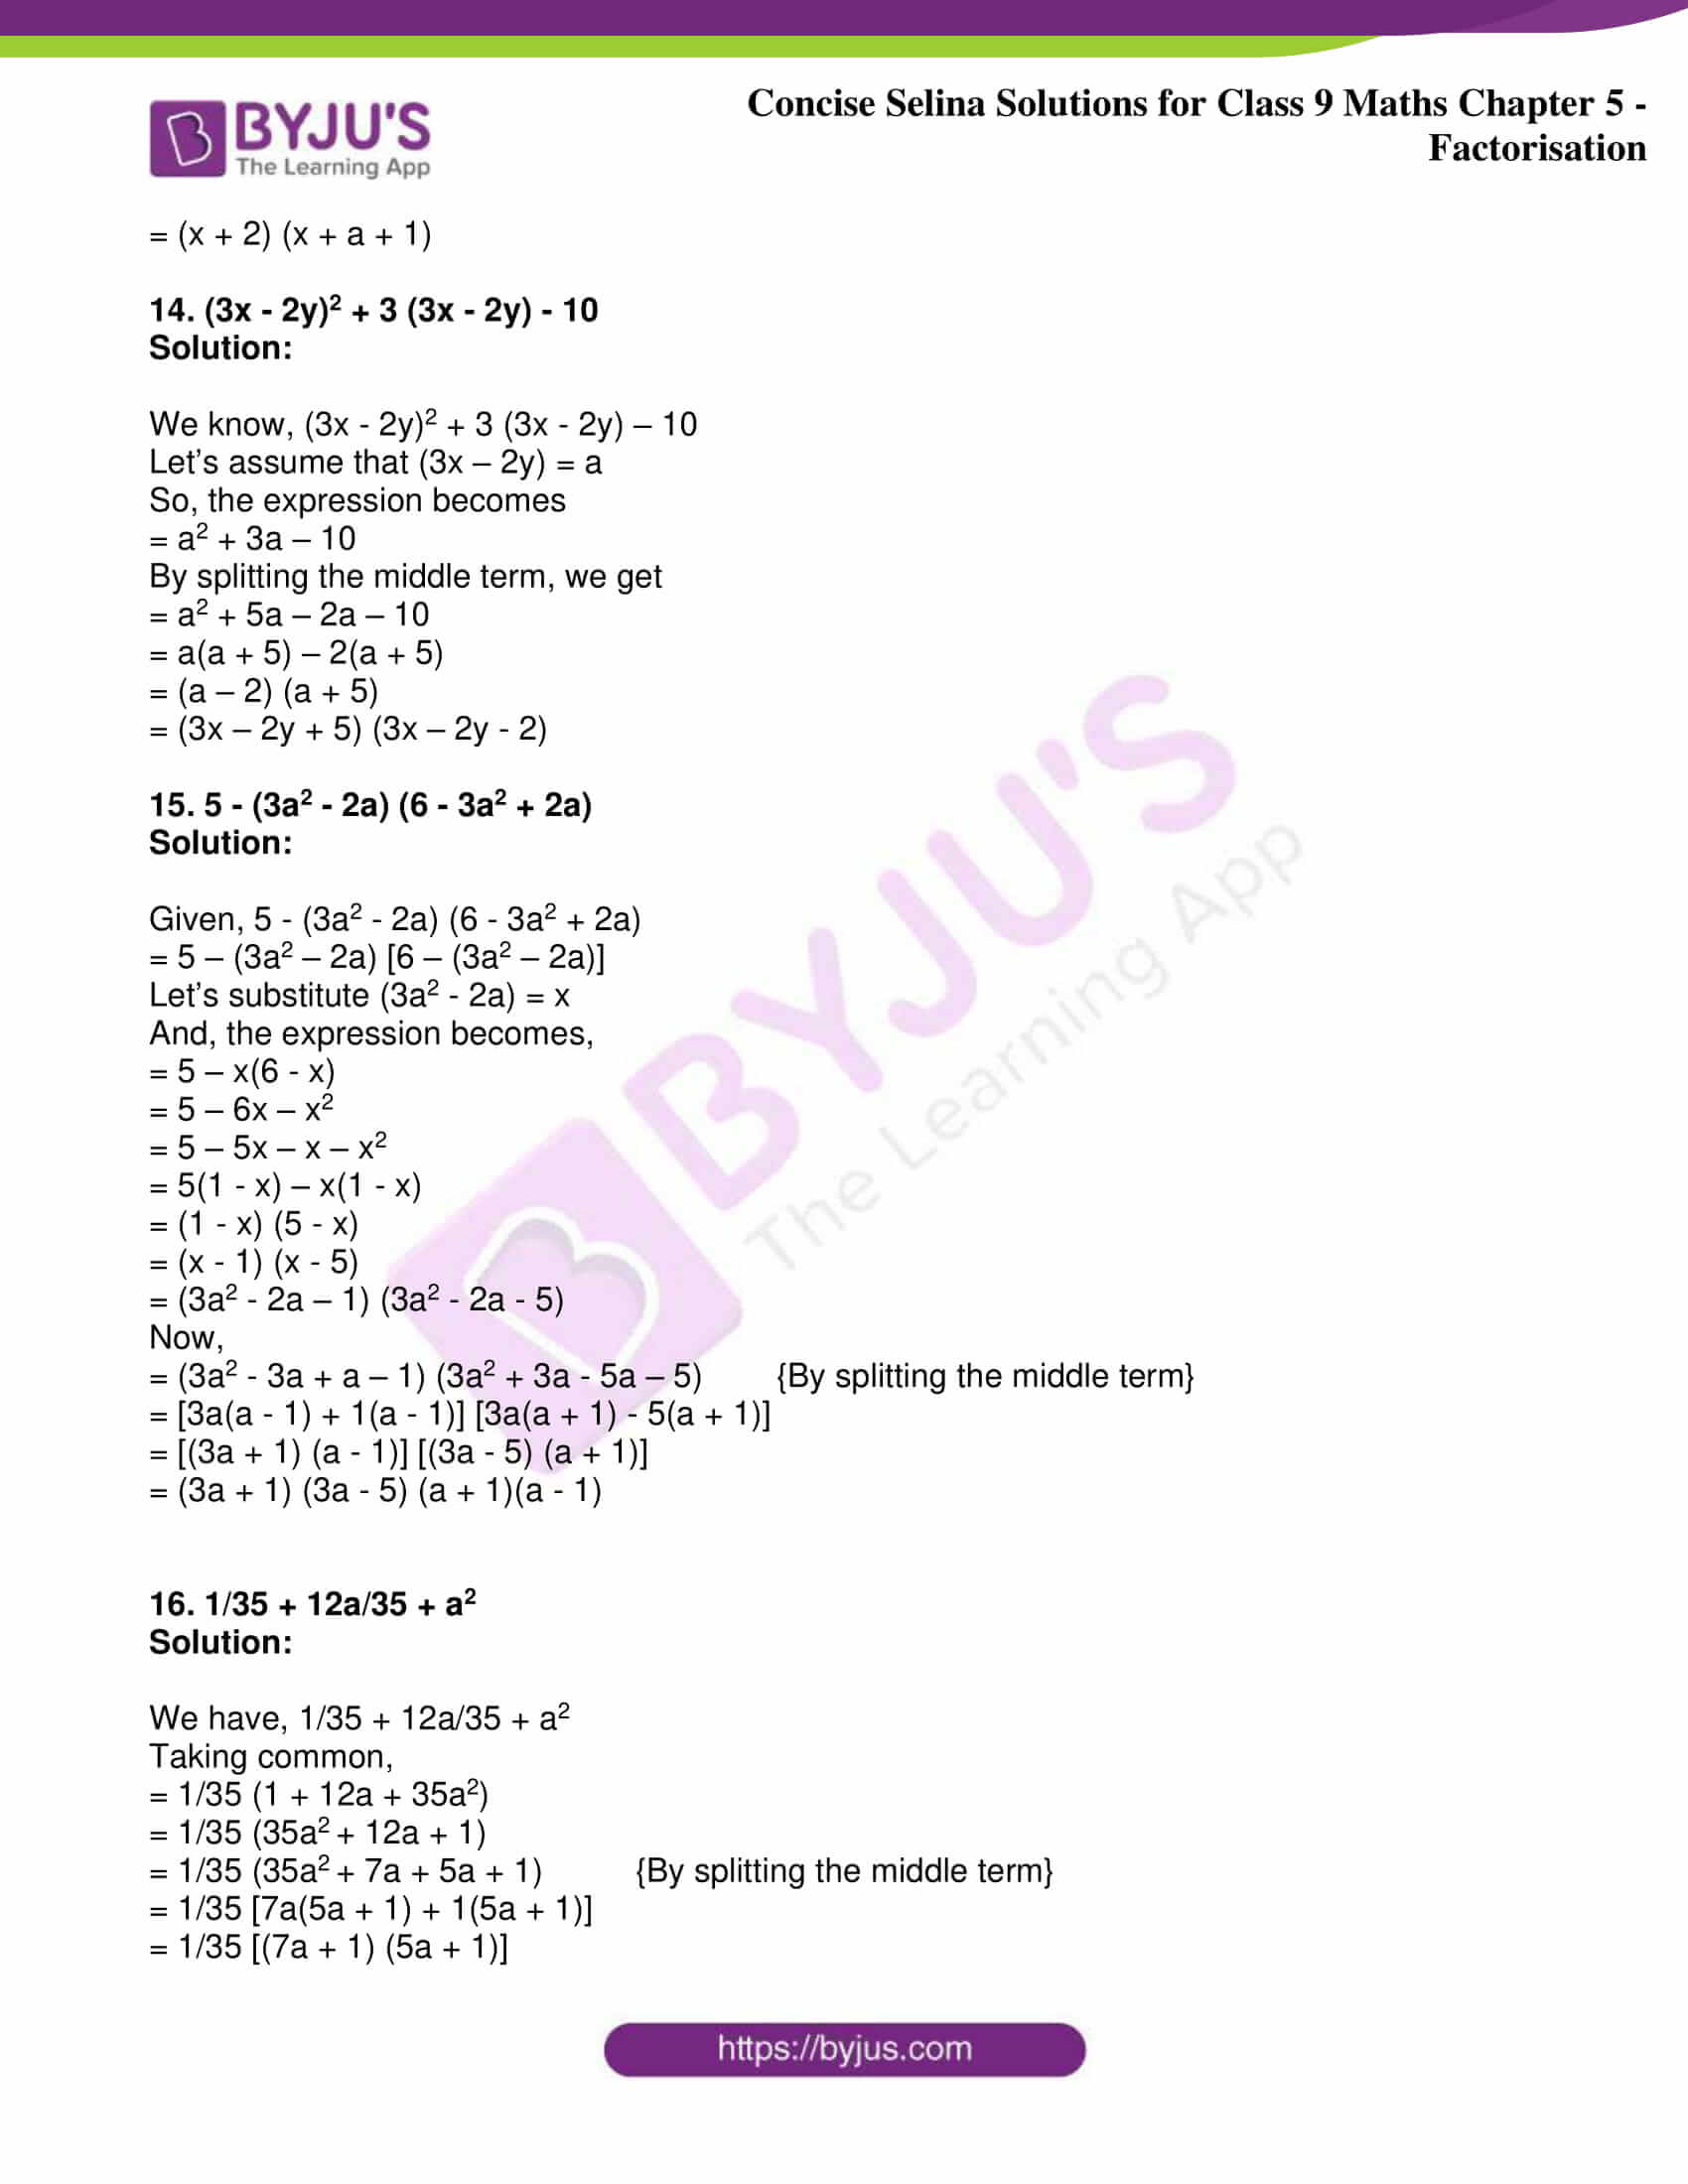 icse class 9 maths may10 selina solutions chapter 5 factorisation 09